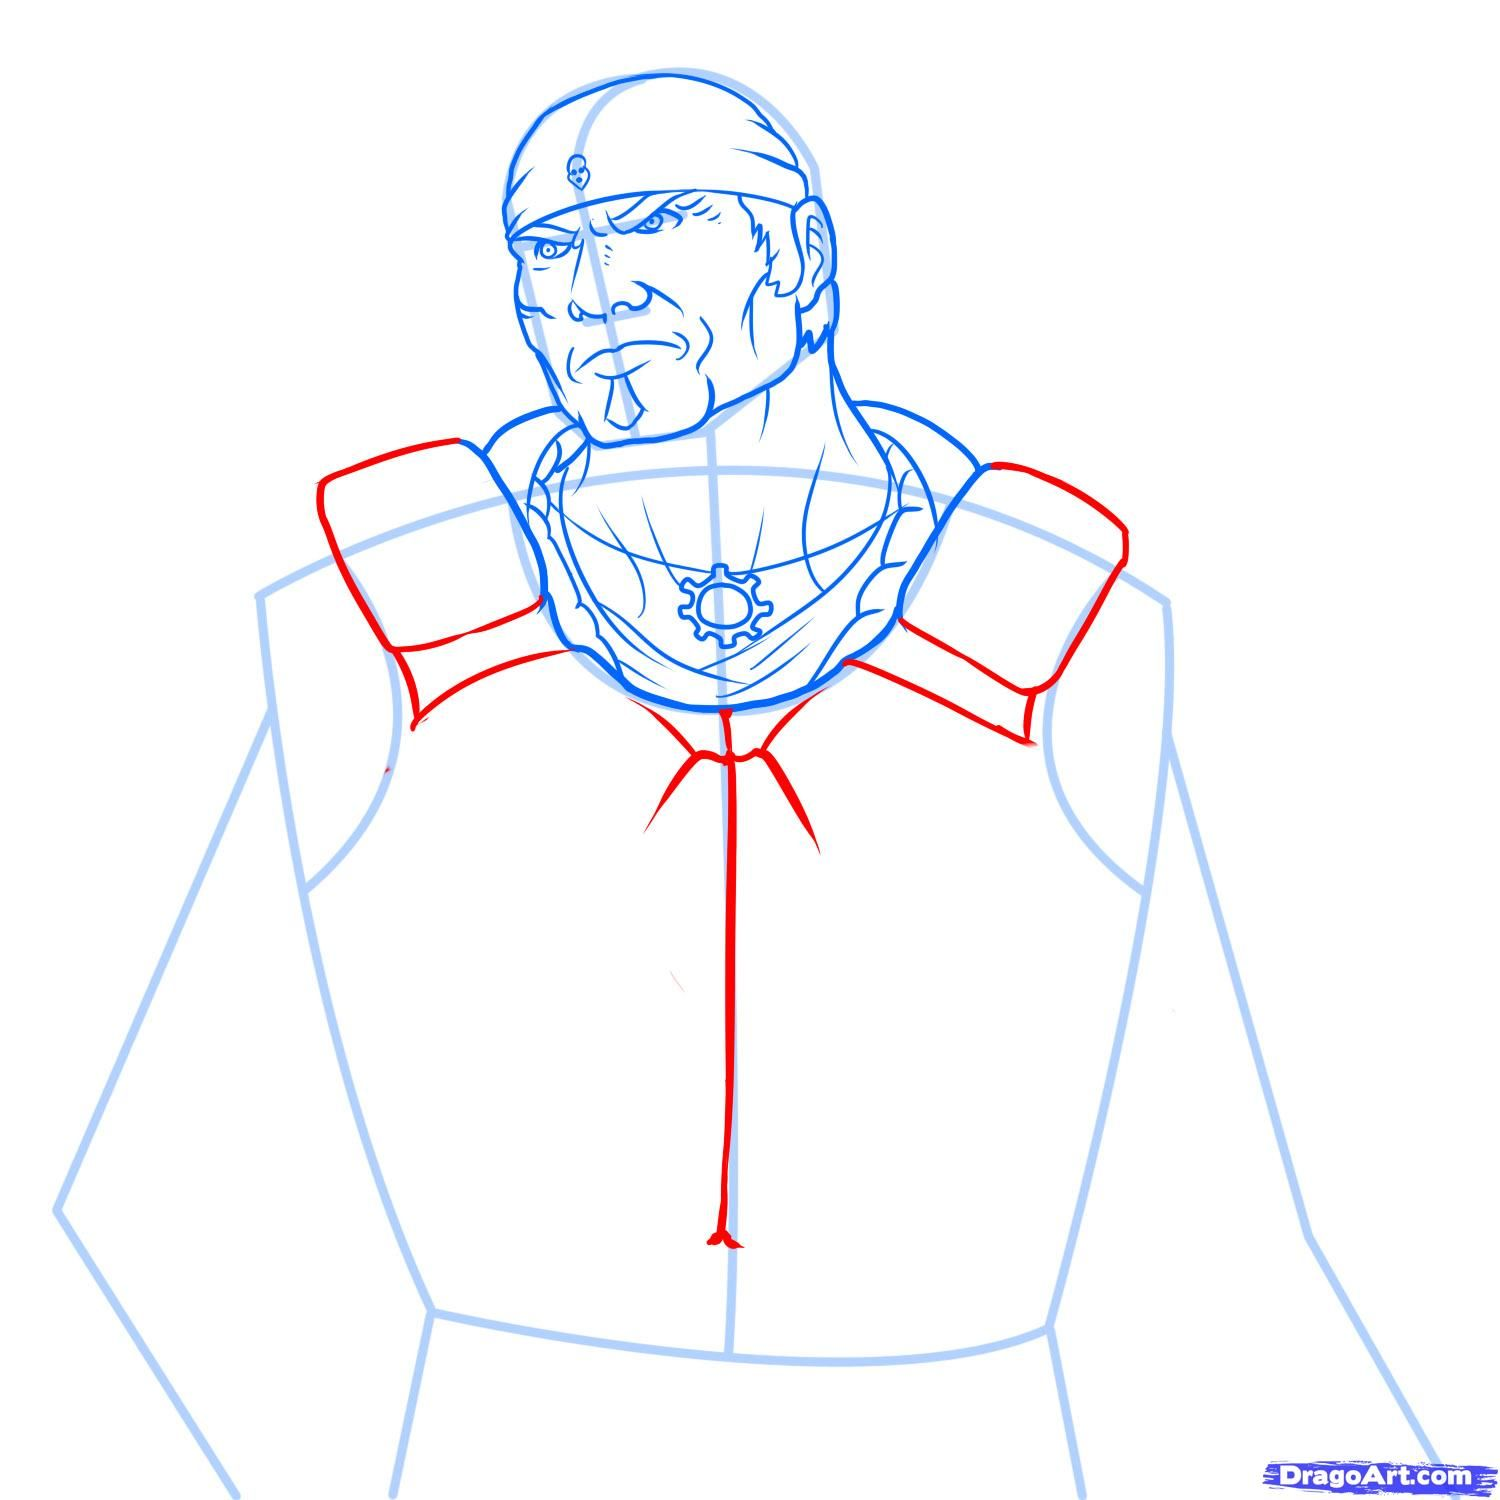 How to draw Ezio from Assassins Creed with a pencil step by step 8